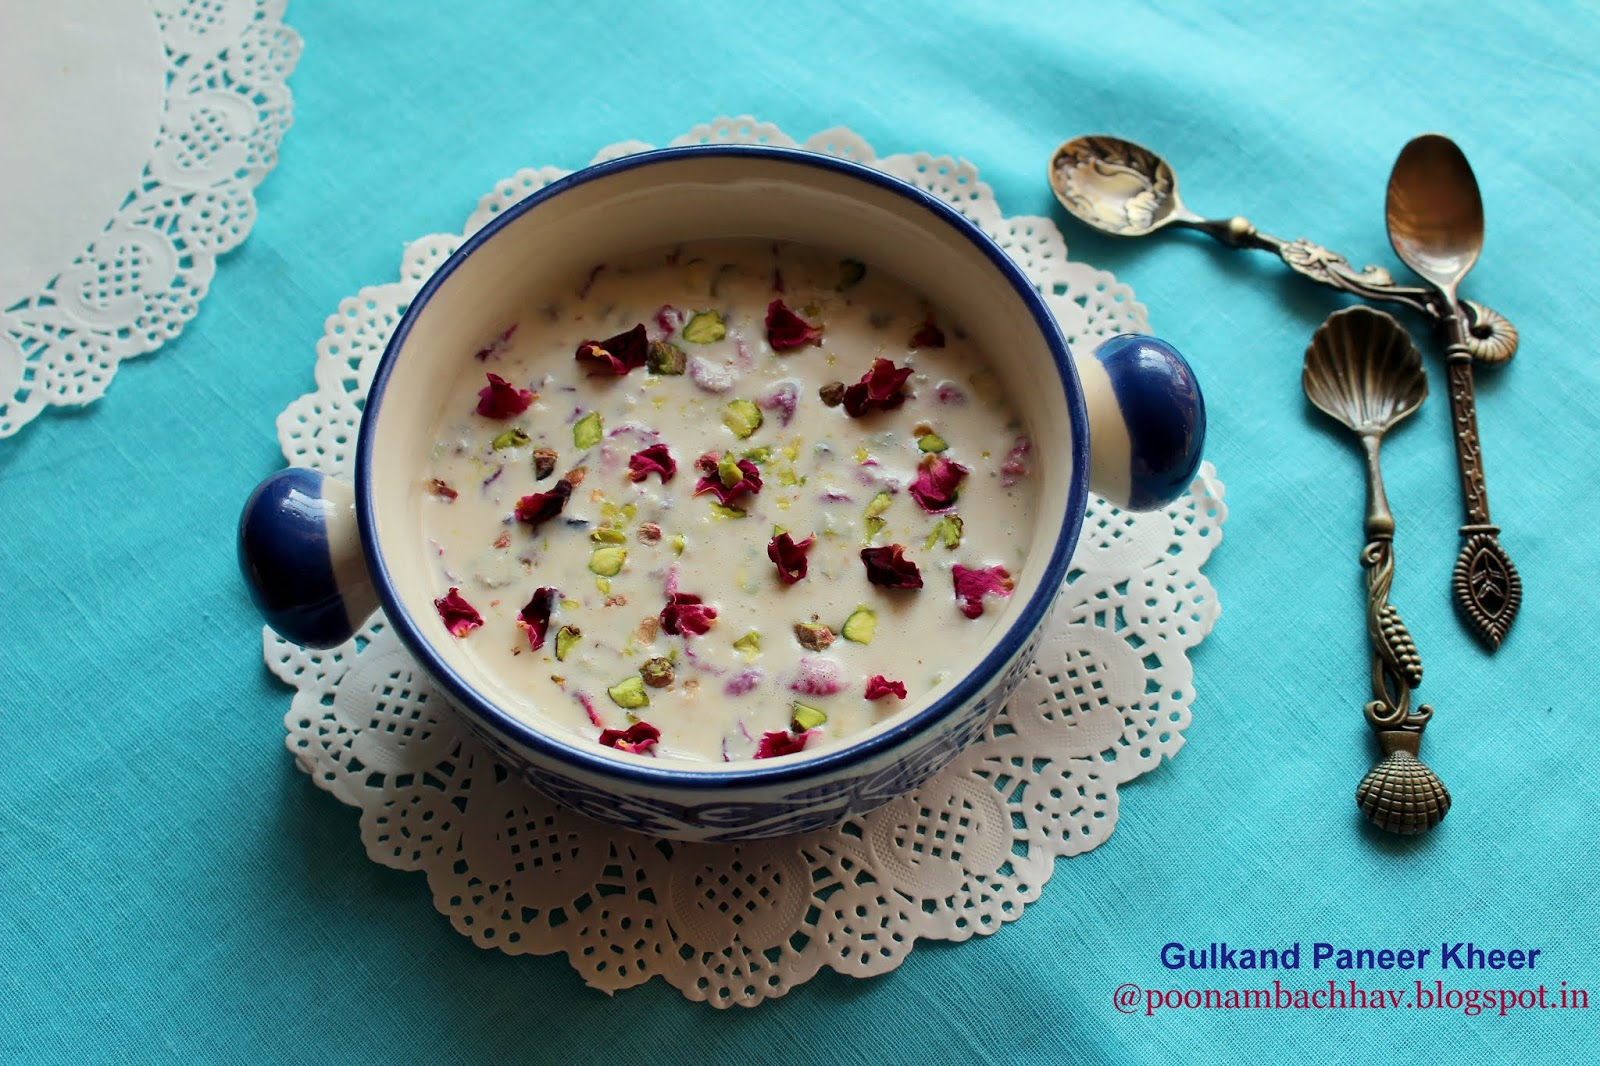 Wondrous Annapurna Gulkand Paneer Kheer Rose Petal Jam Flavored Download Free Architecture Designs Intelgarnamadebymaigaardcom